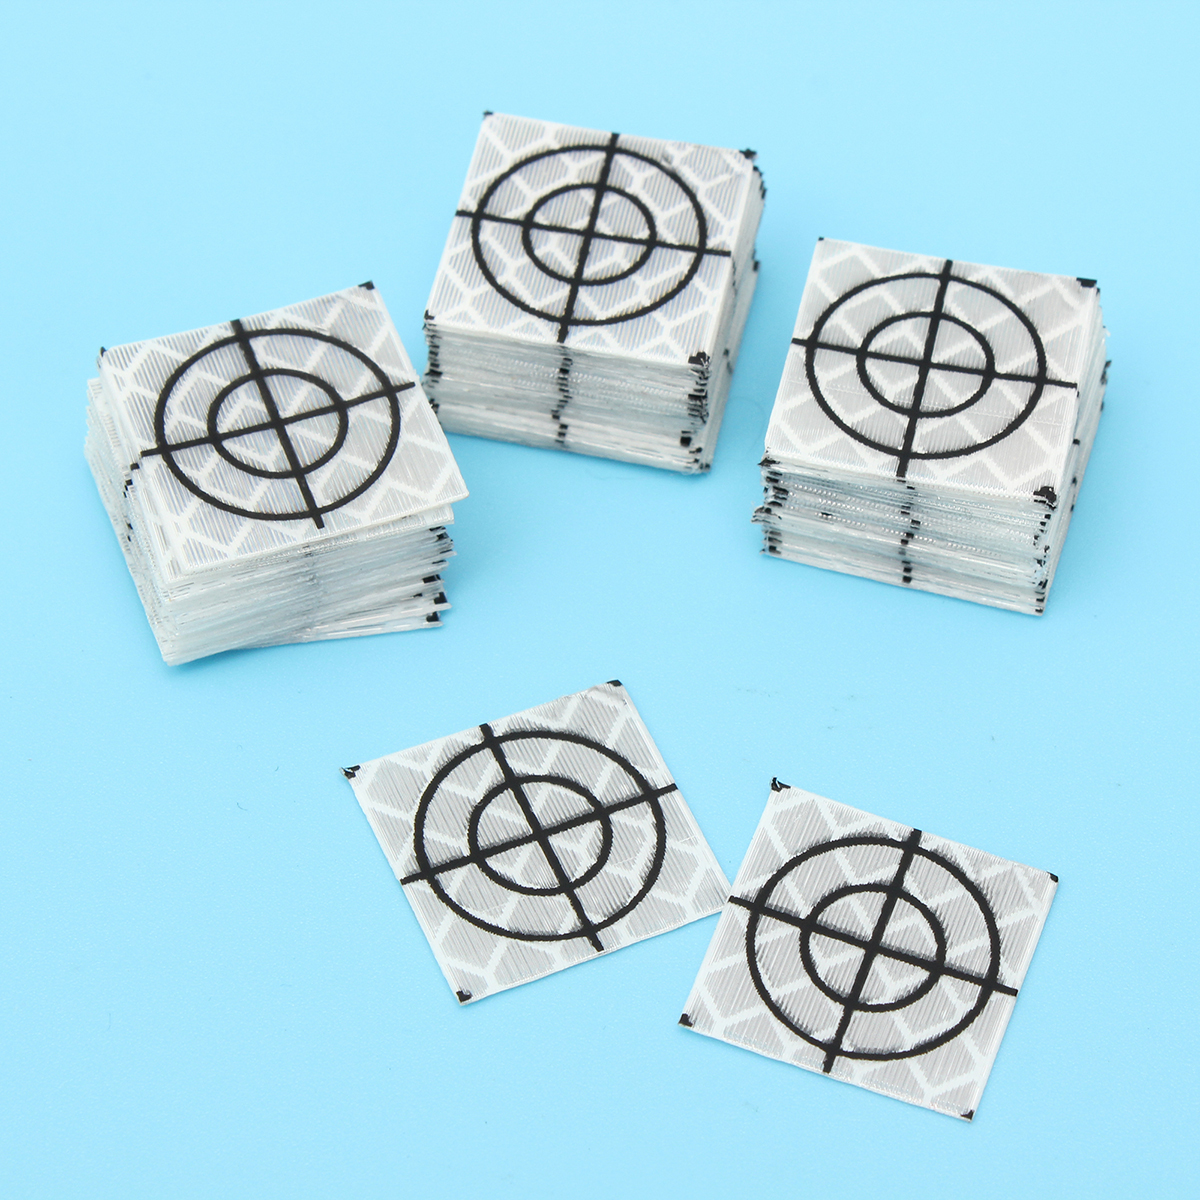 100pcs Reflector Sheet 20 x 20mm Reflective Tape Target Widely Used In Enginee